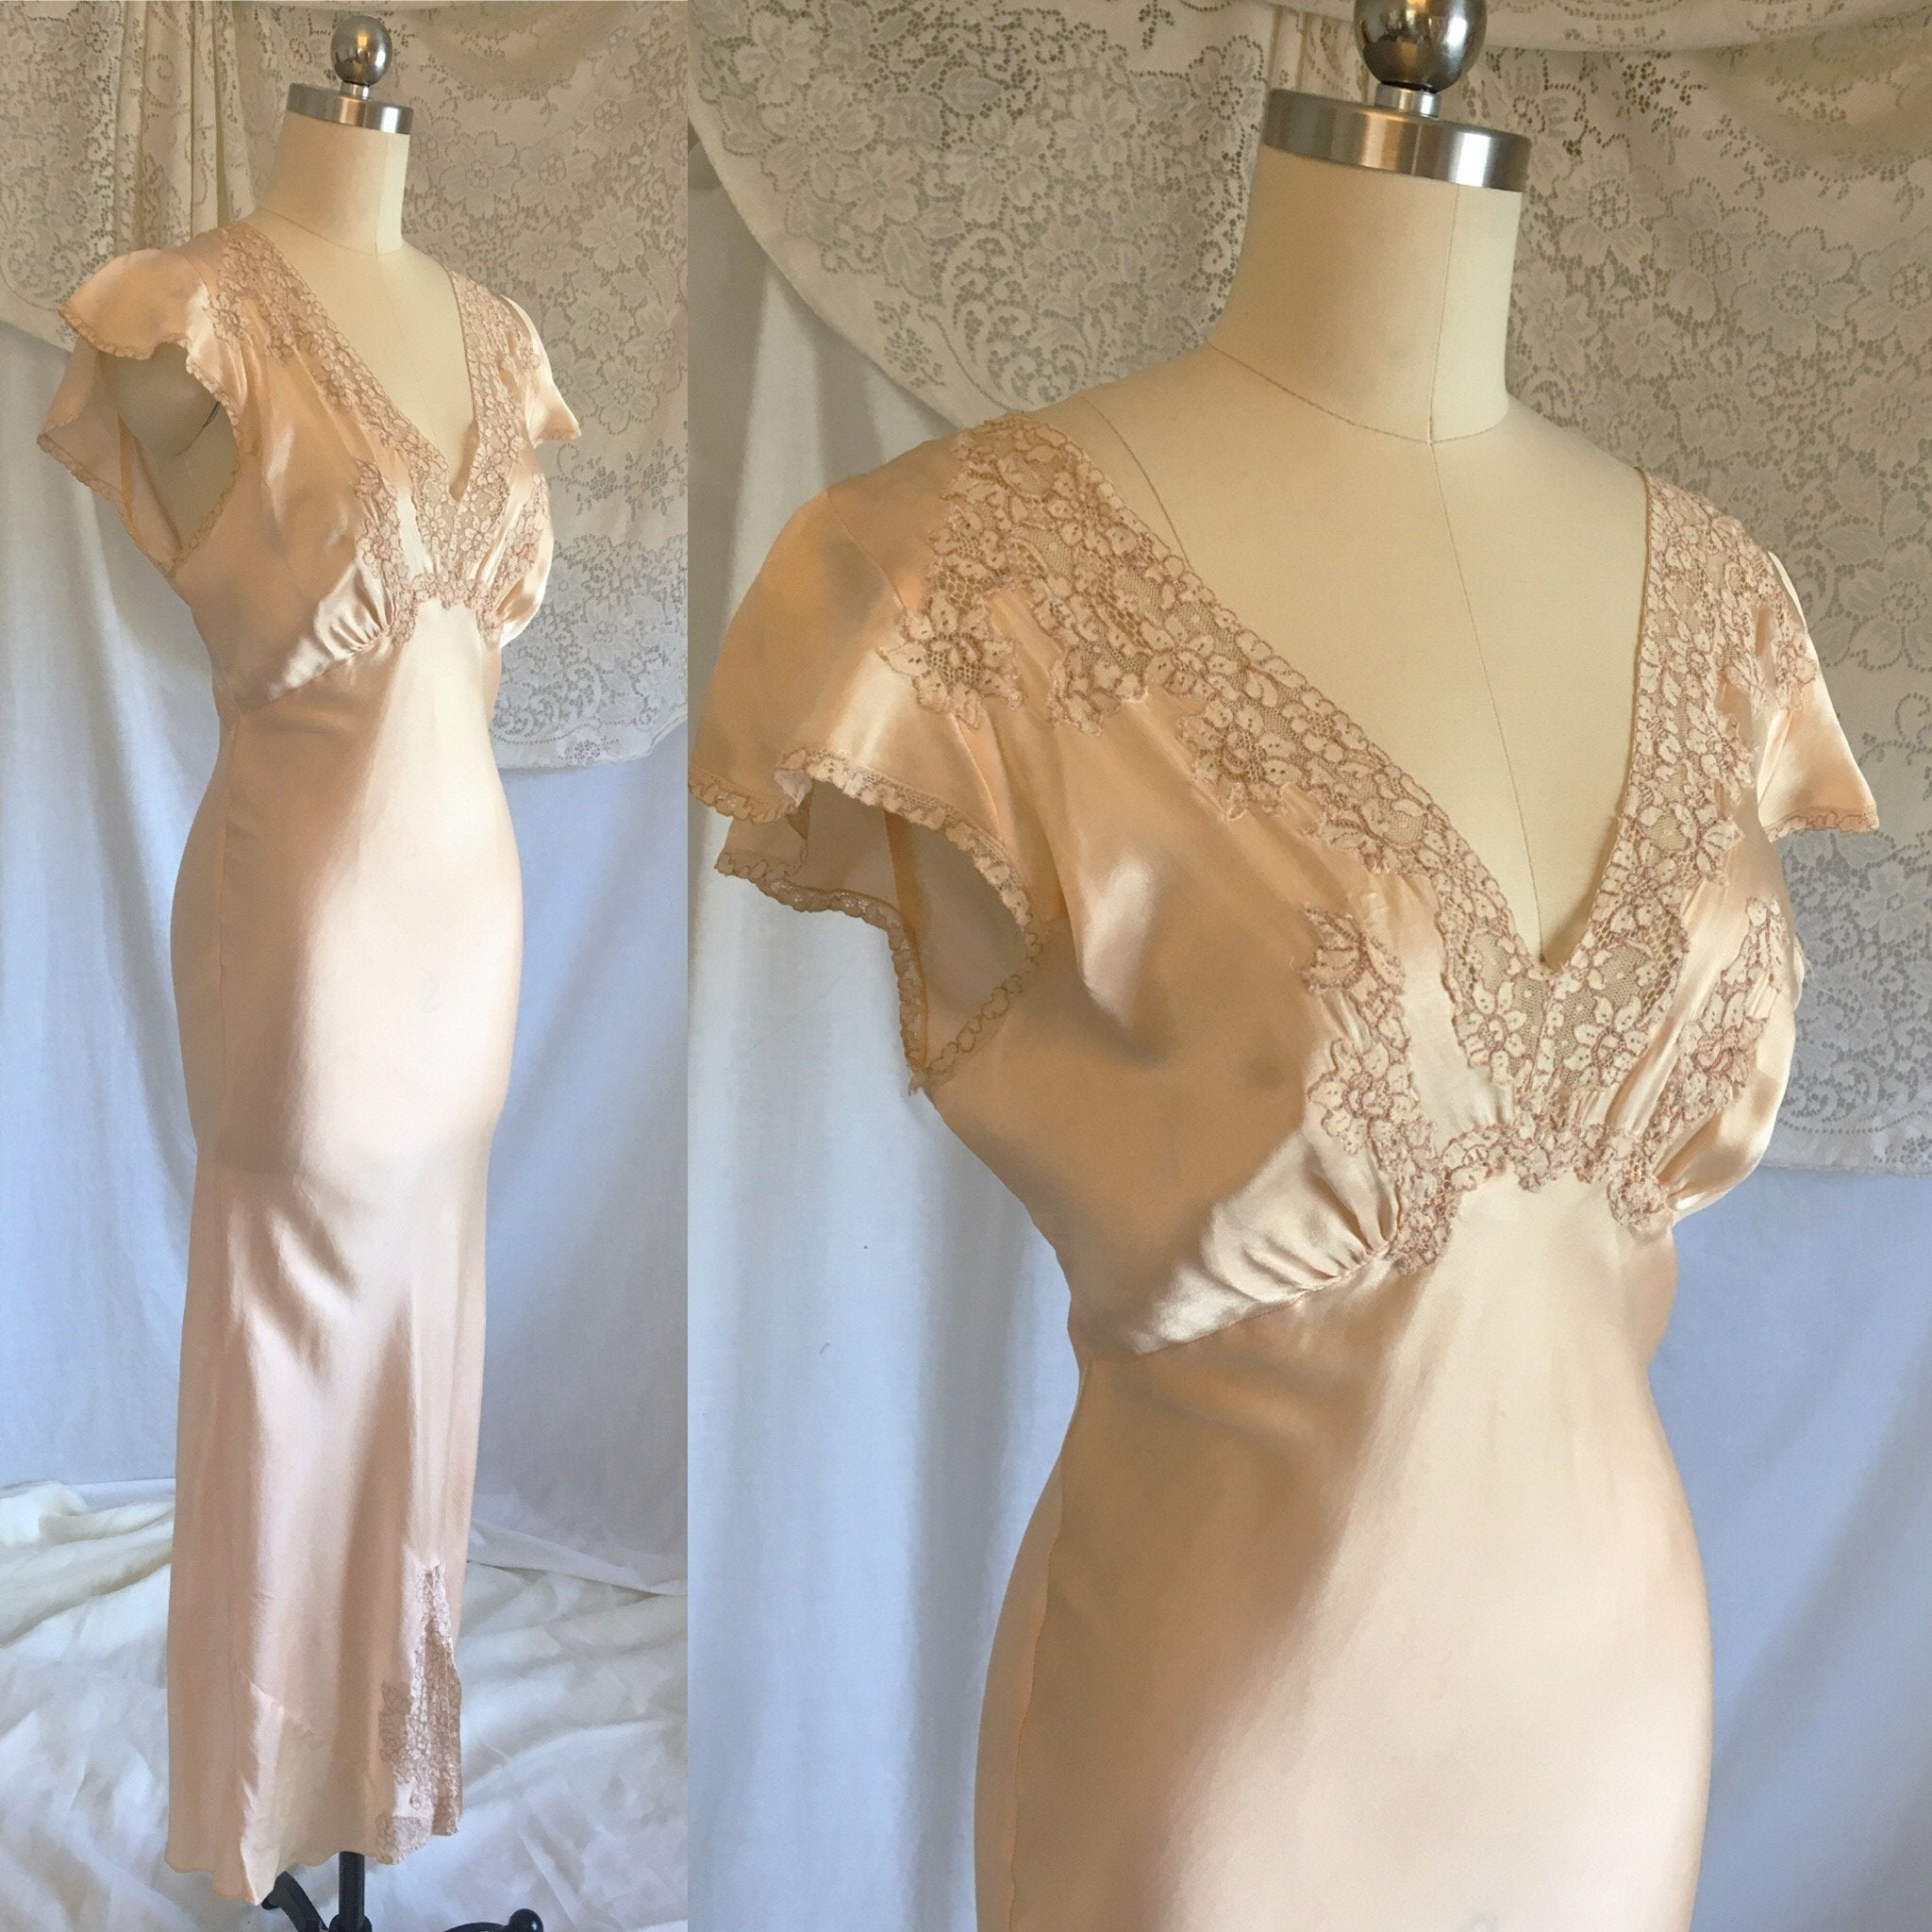 Vintage 1930's Nightgown | Pale Peach Silk with Embroidered Alençon Lace | Size XS, S - Daggers & Dames